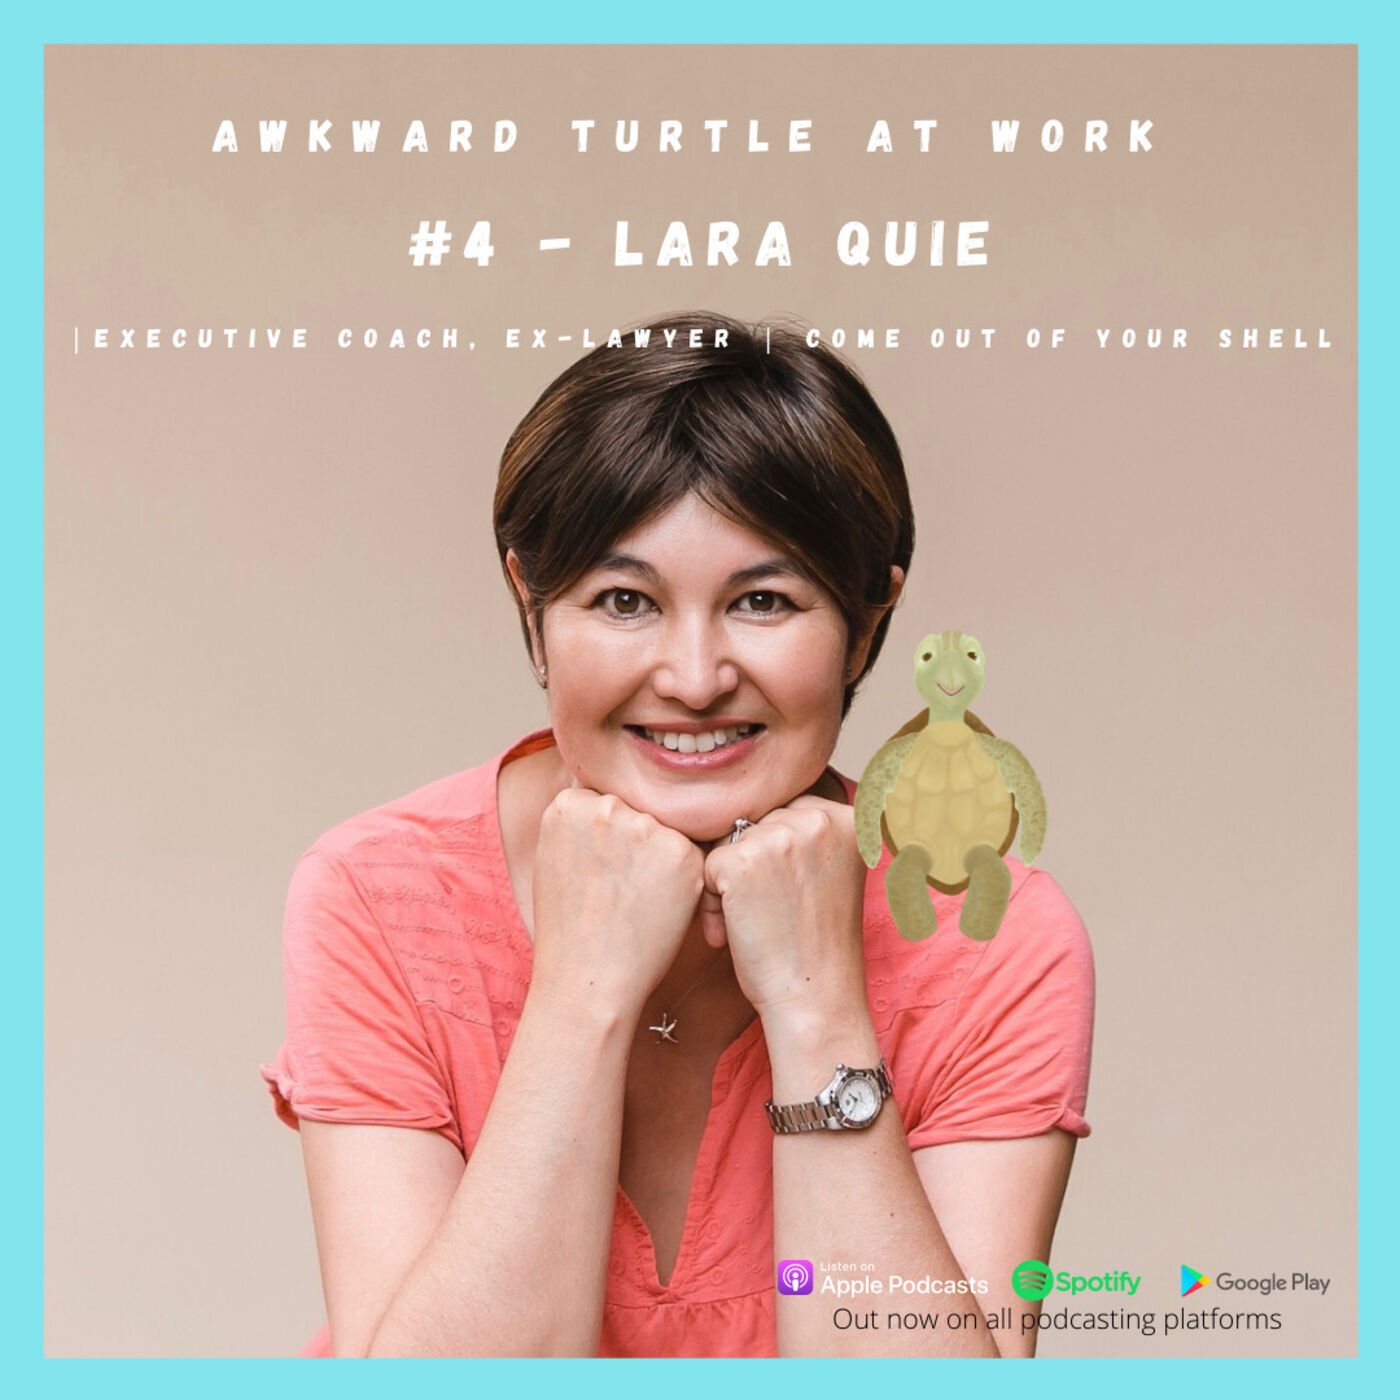 #4 - Lara Quie | Executive Coach, Ex-Lawyer | Come out of your shell